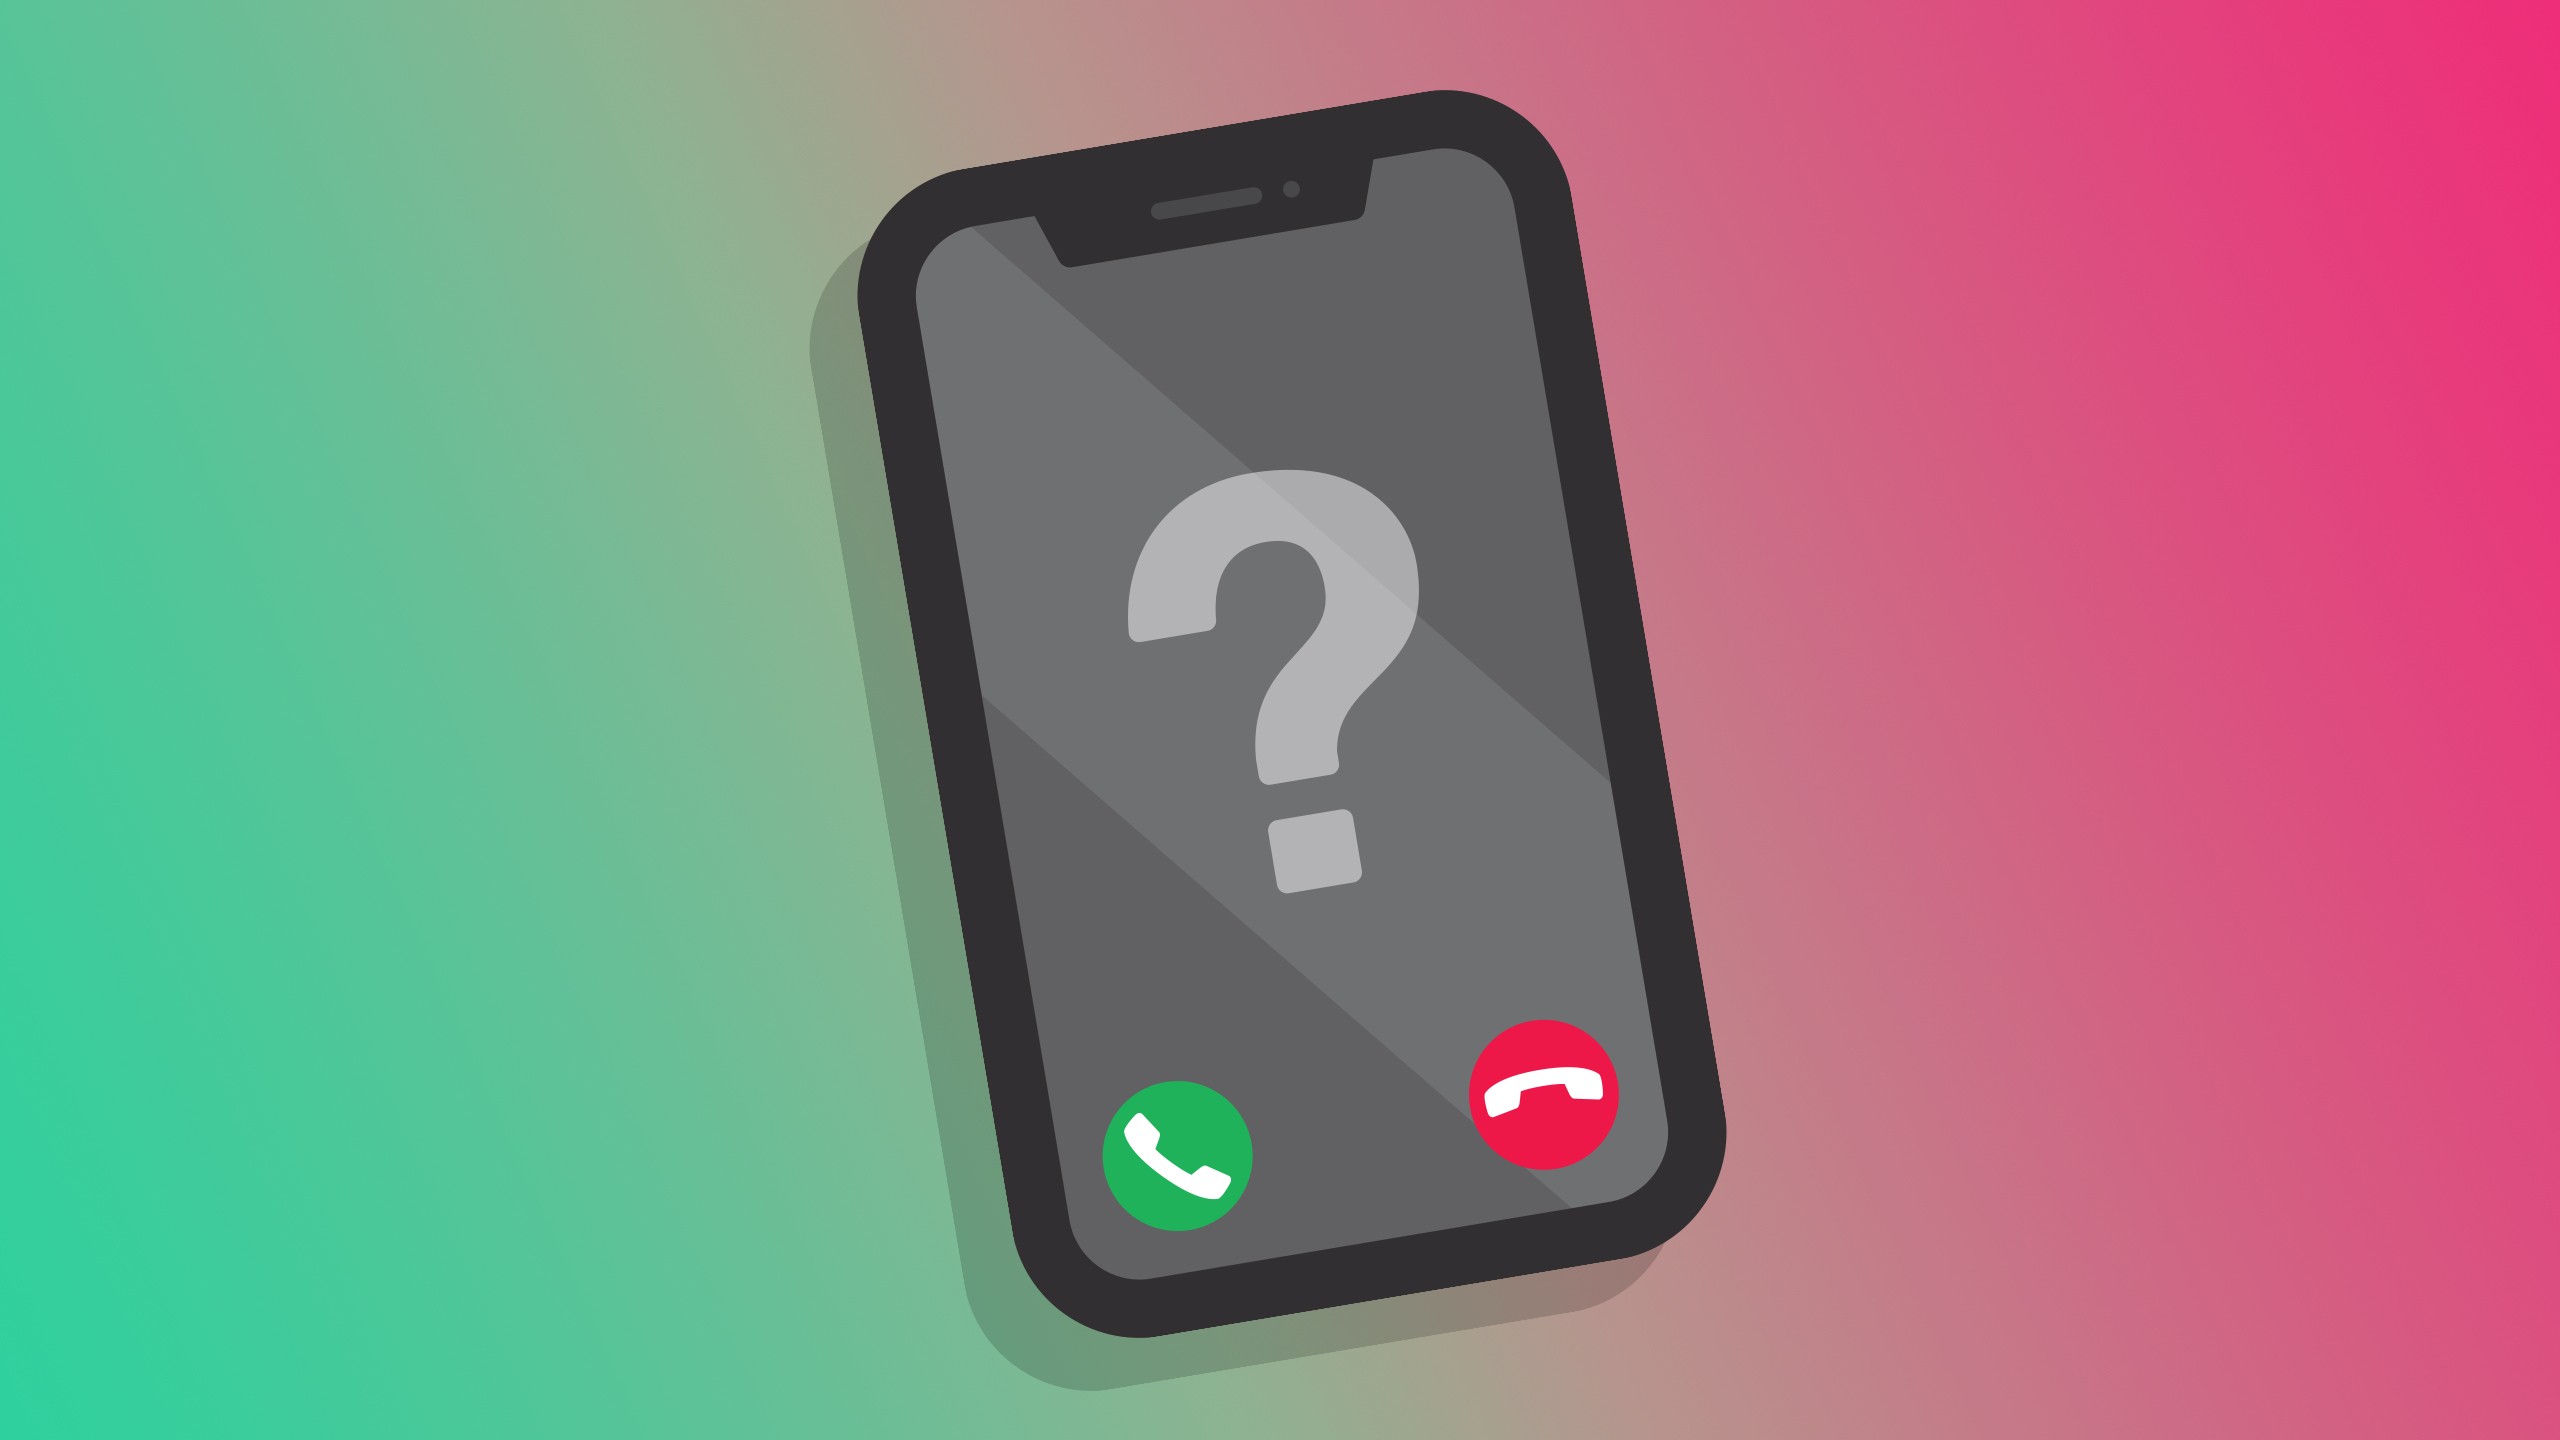 How Do I Hide My Number On iPhone? How To Make Anonymous ...